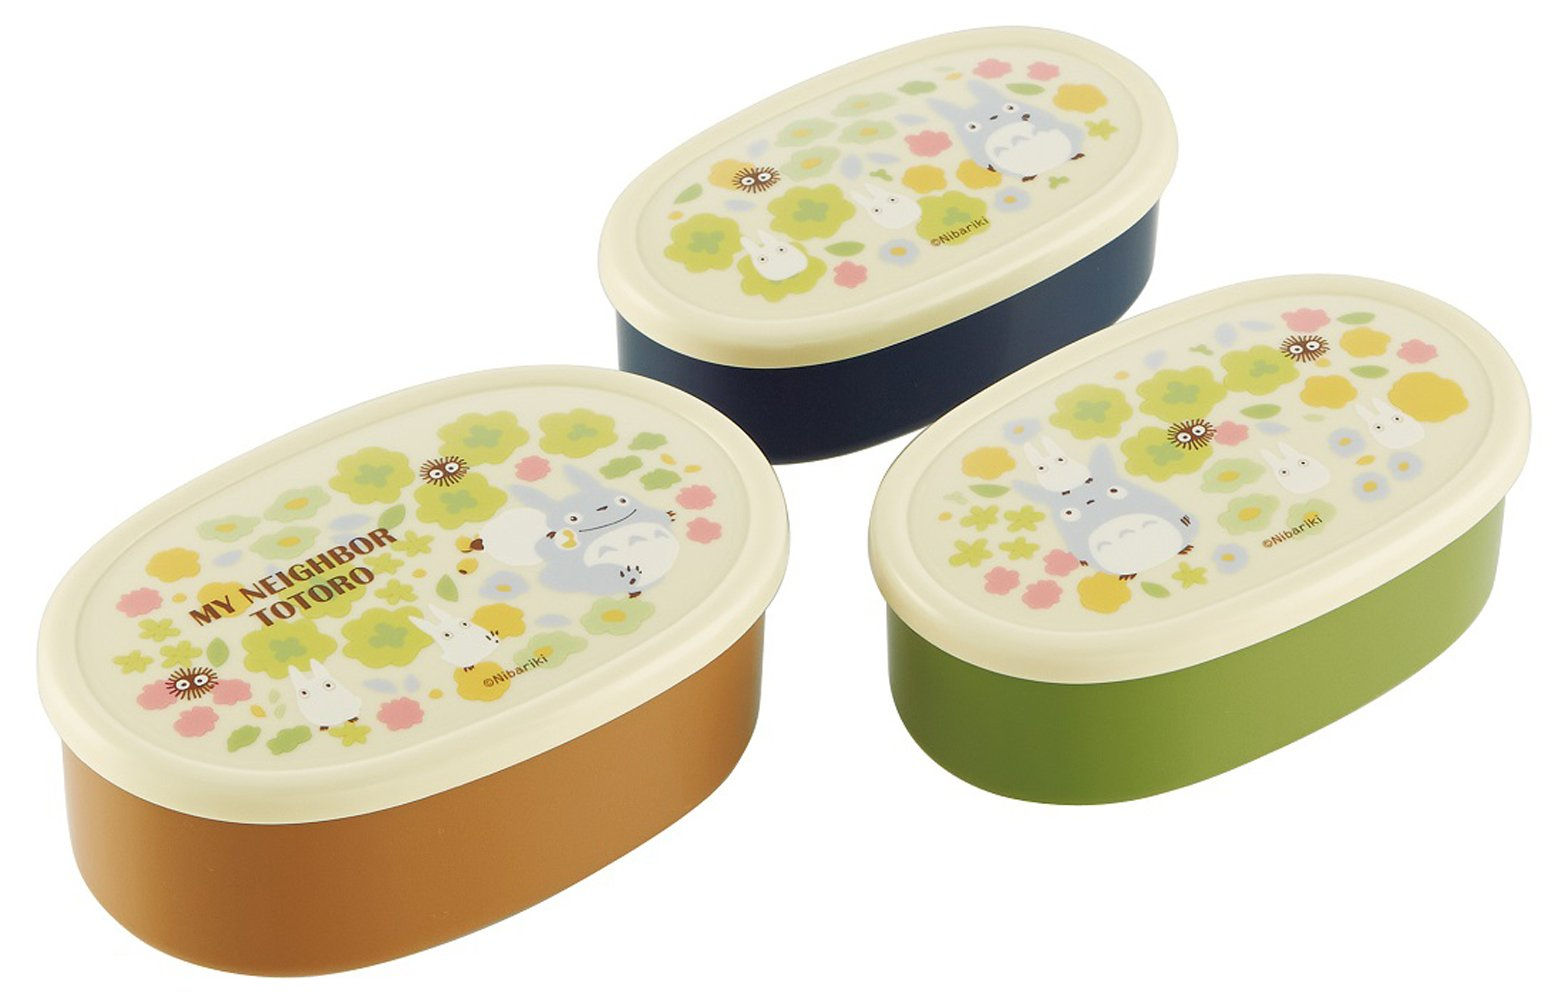 Totoro Design 3 Pieces Nesting Food Storage Boxes Set by Totoro